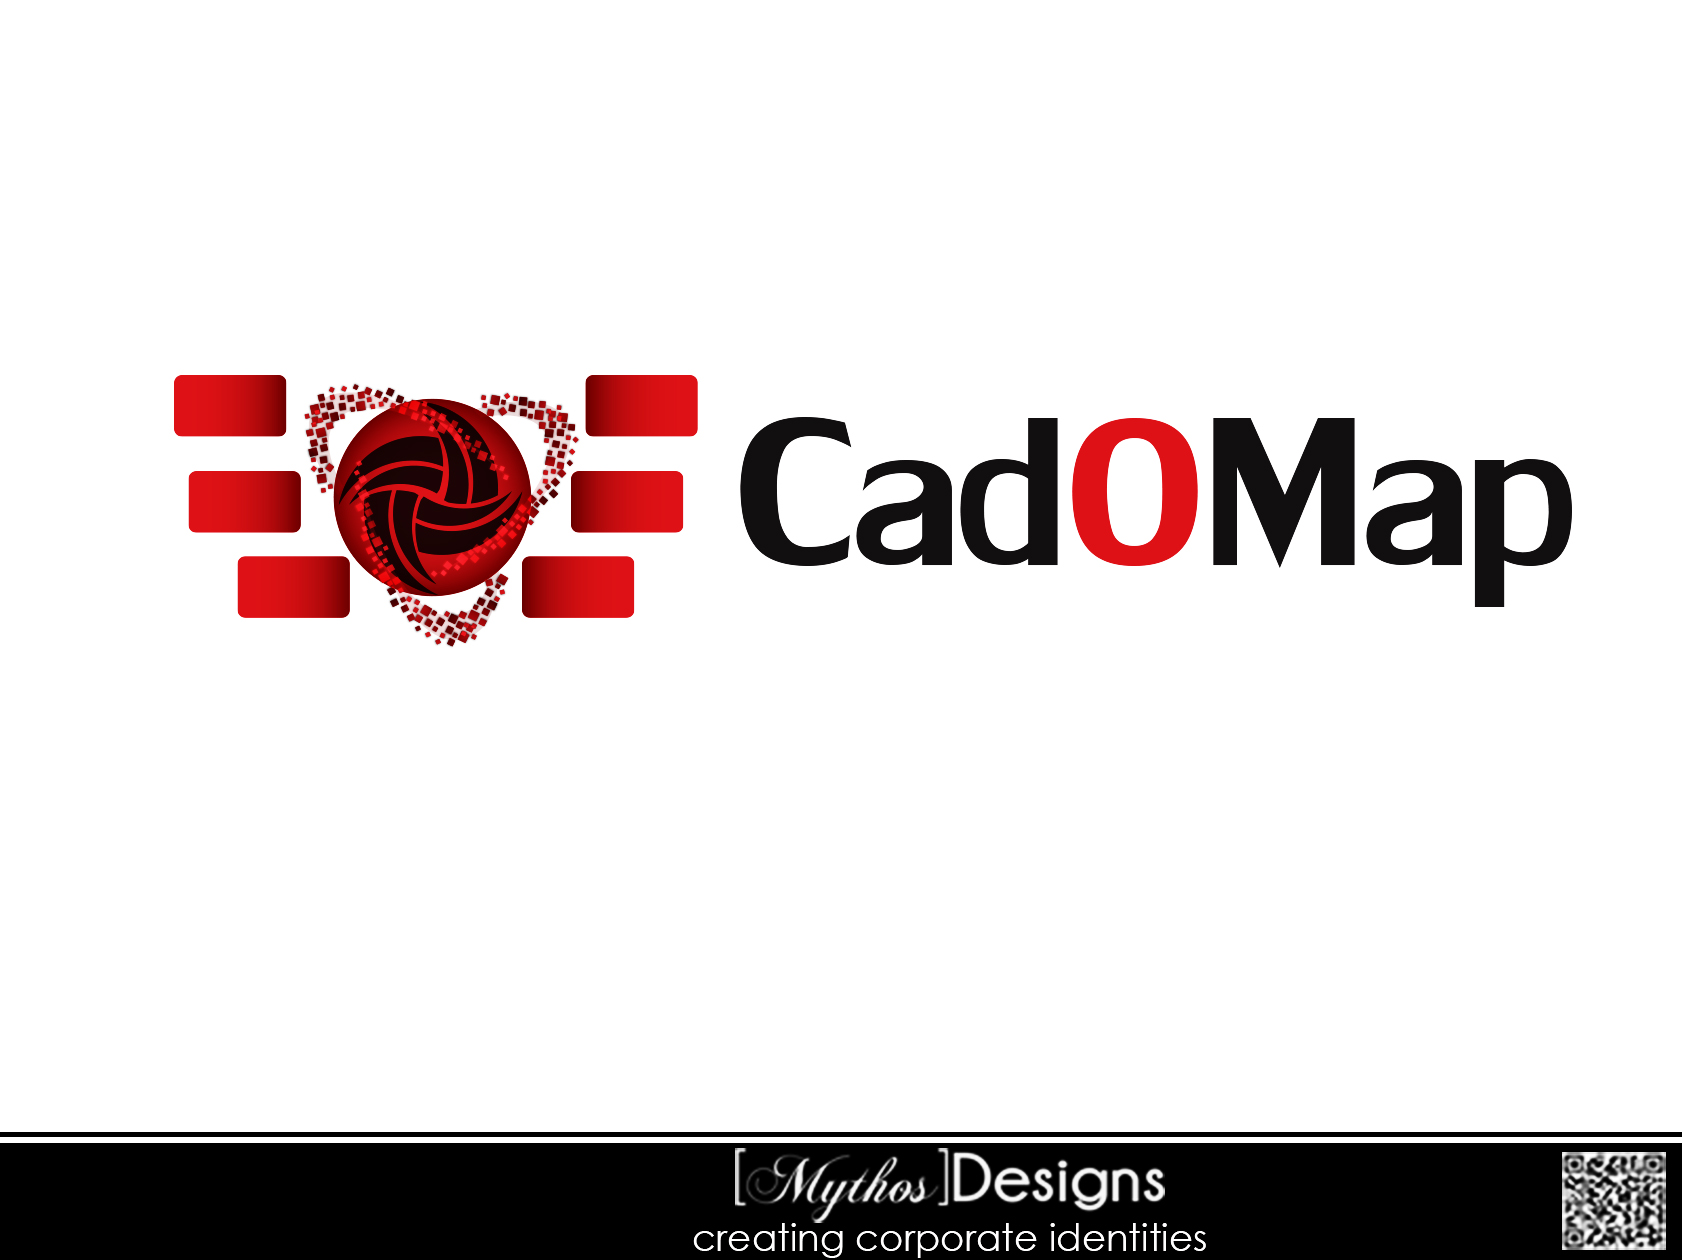 Logo Design by Mythos Designs - Entry No. 48 in the Logo Design Contest Captivating Logo Design for CadOMap software product.